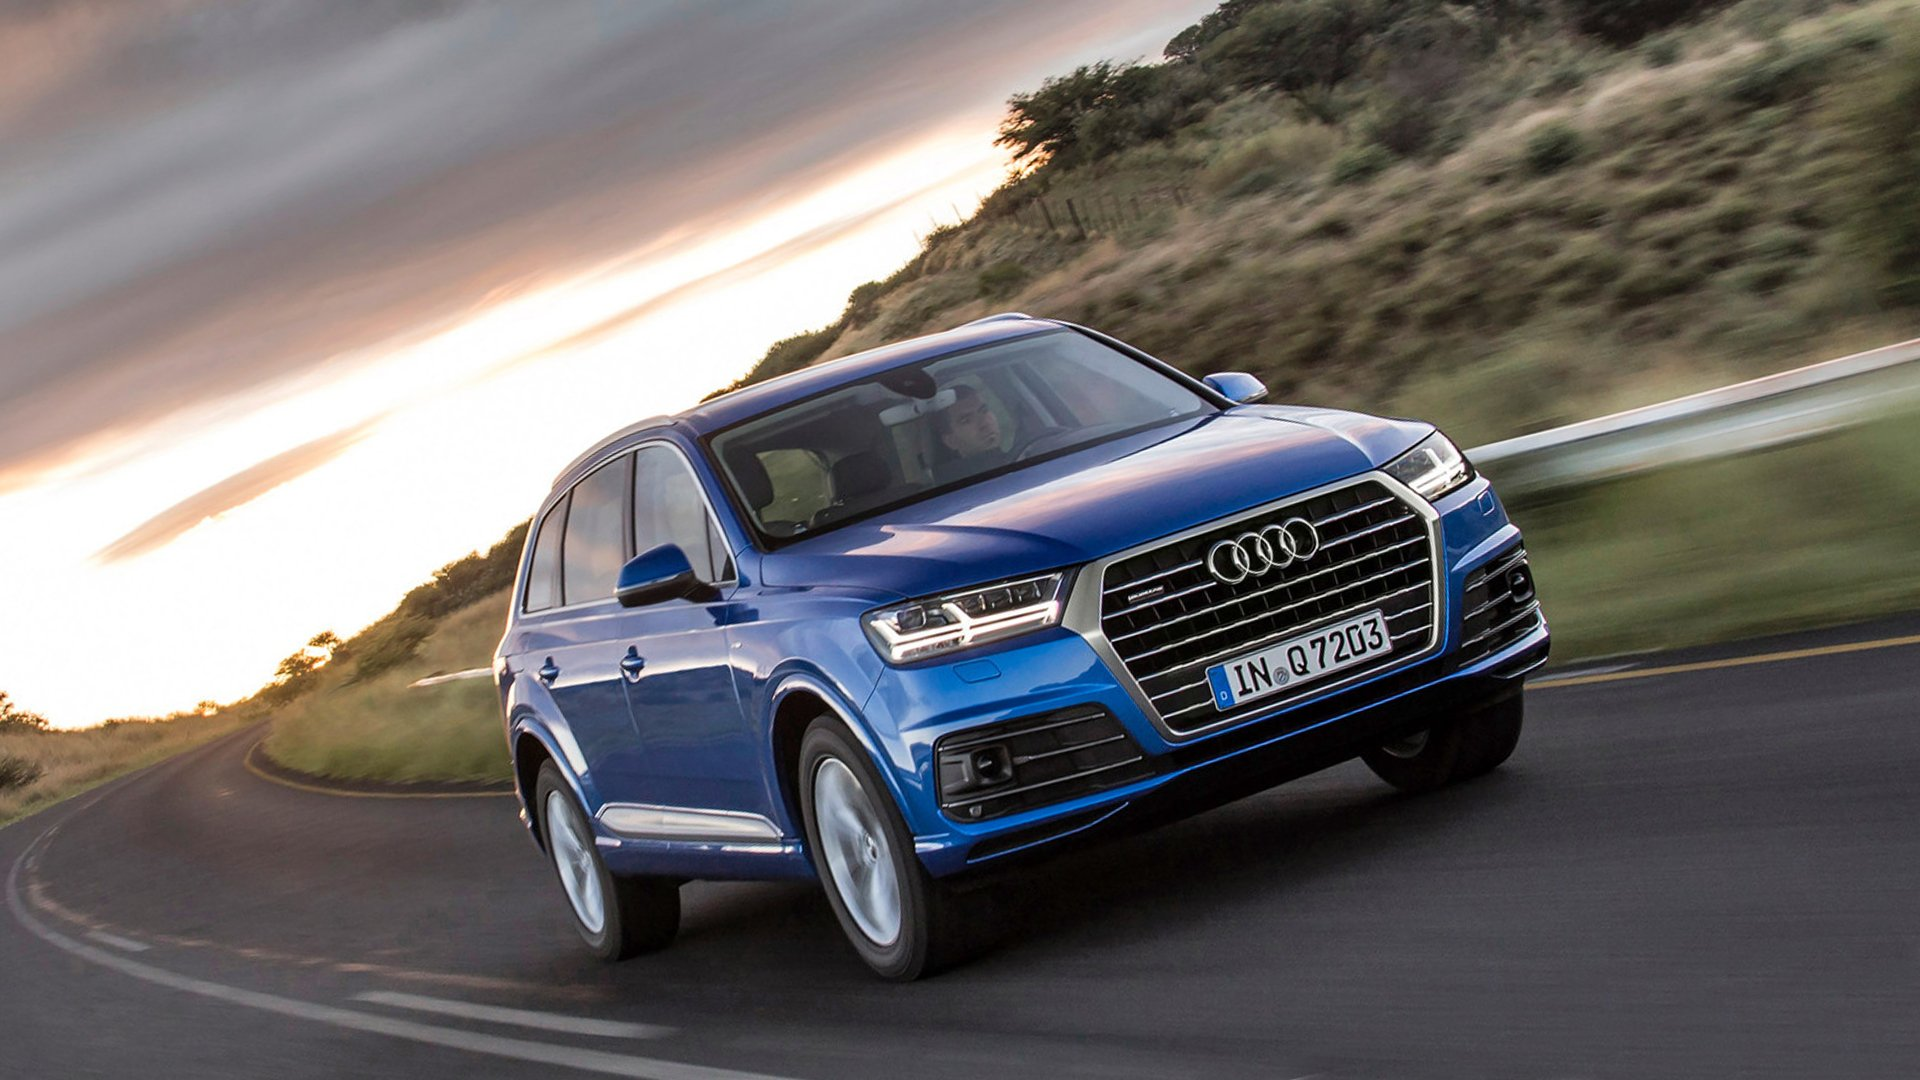 Audi Q7 Photo Gallery HD